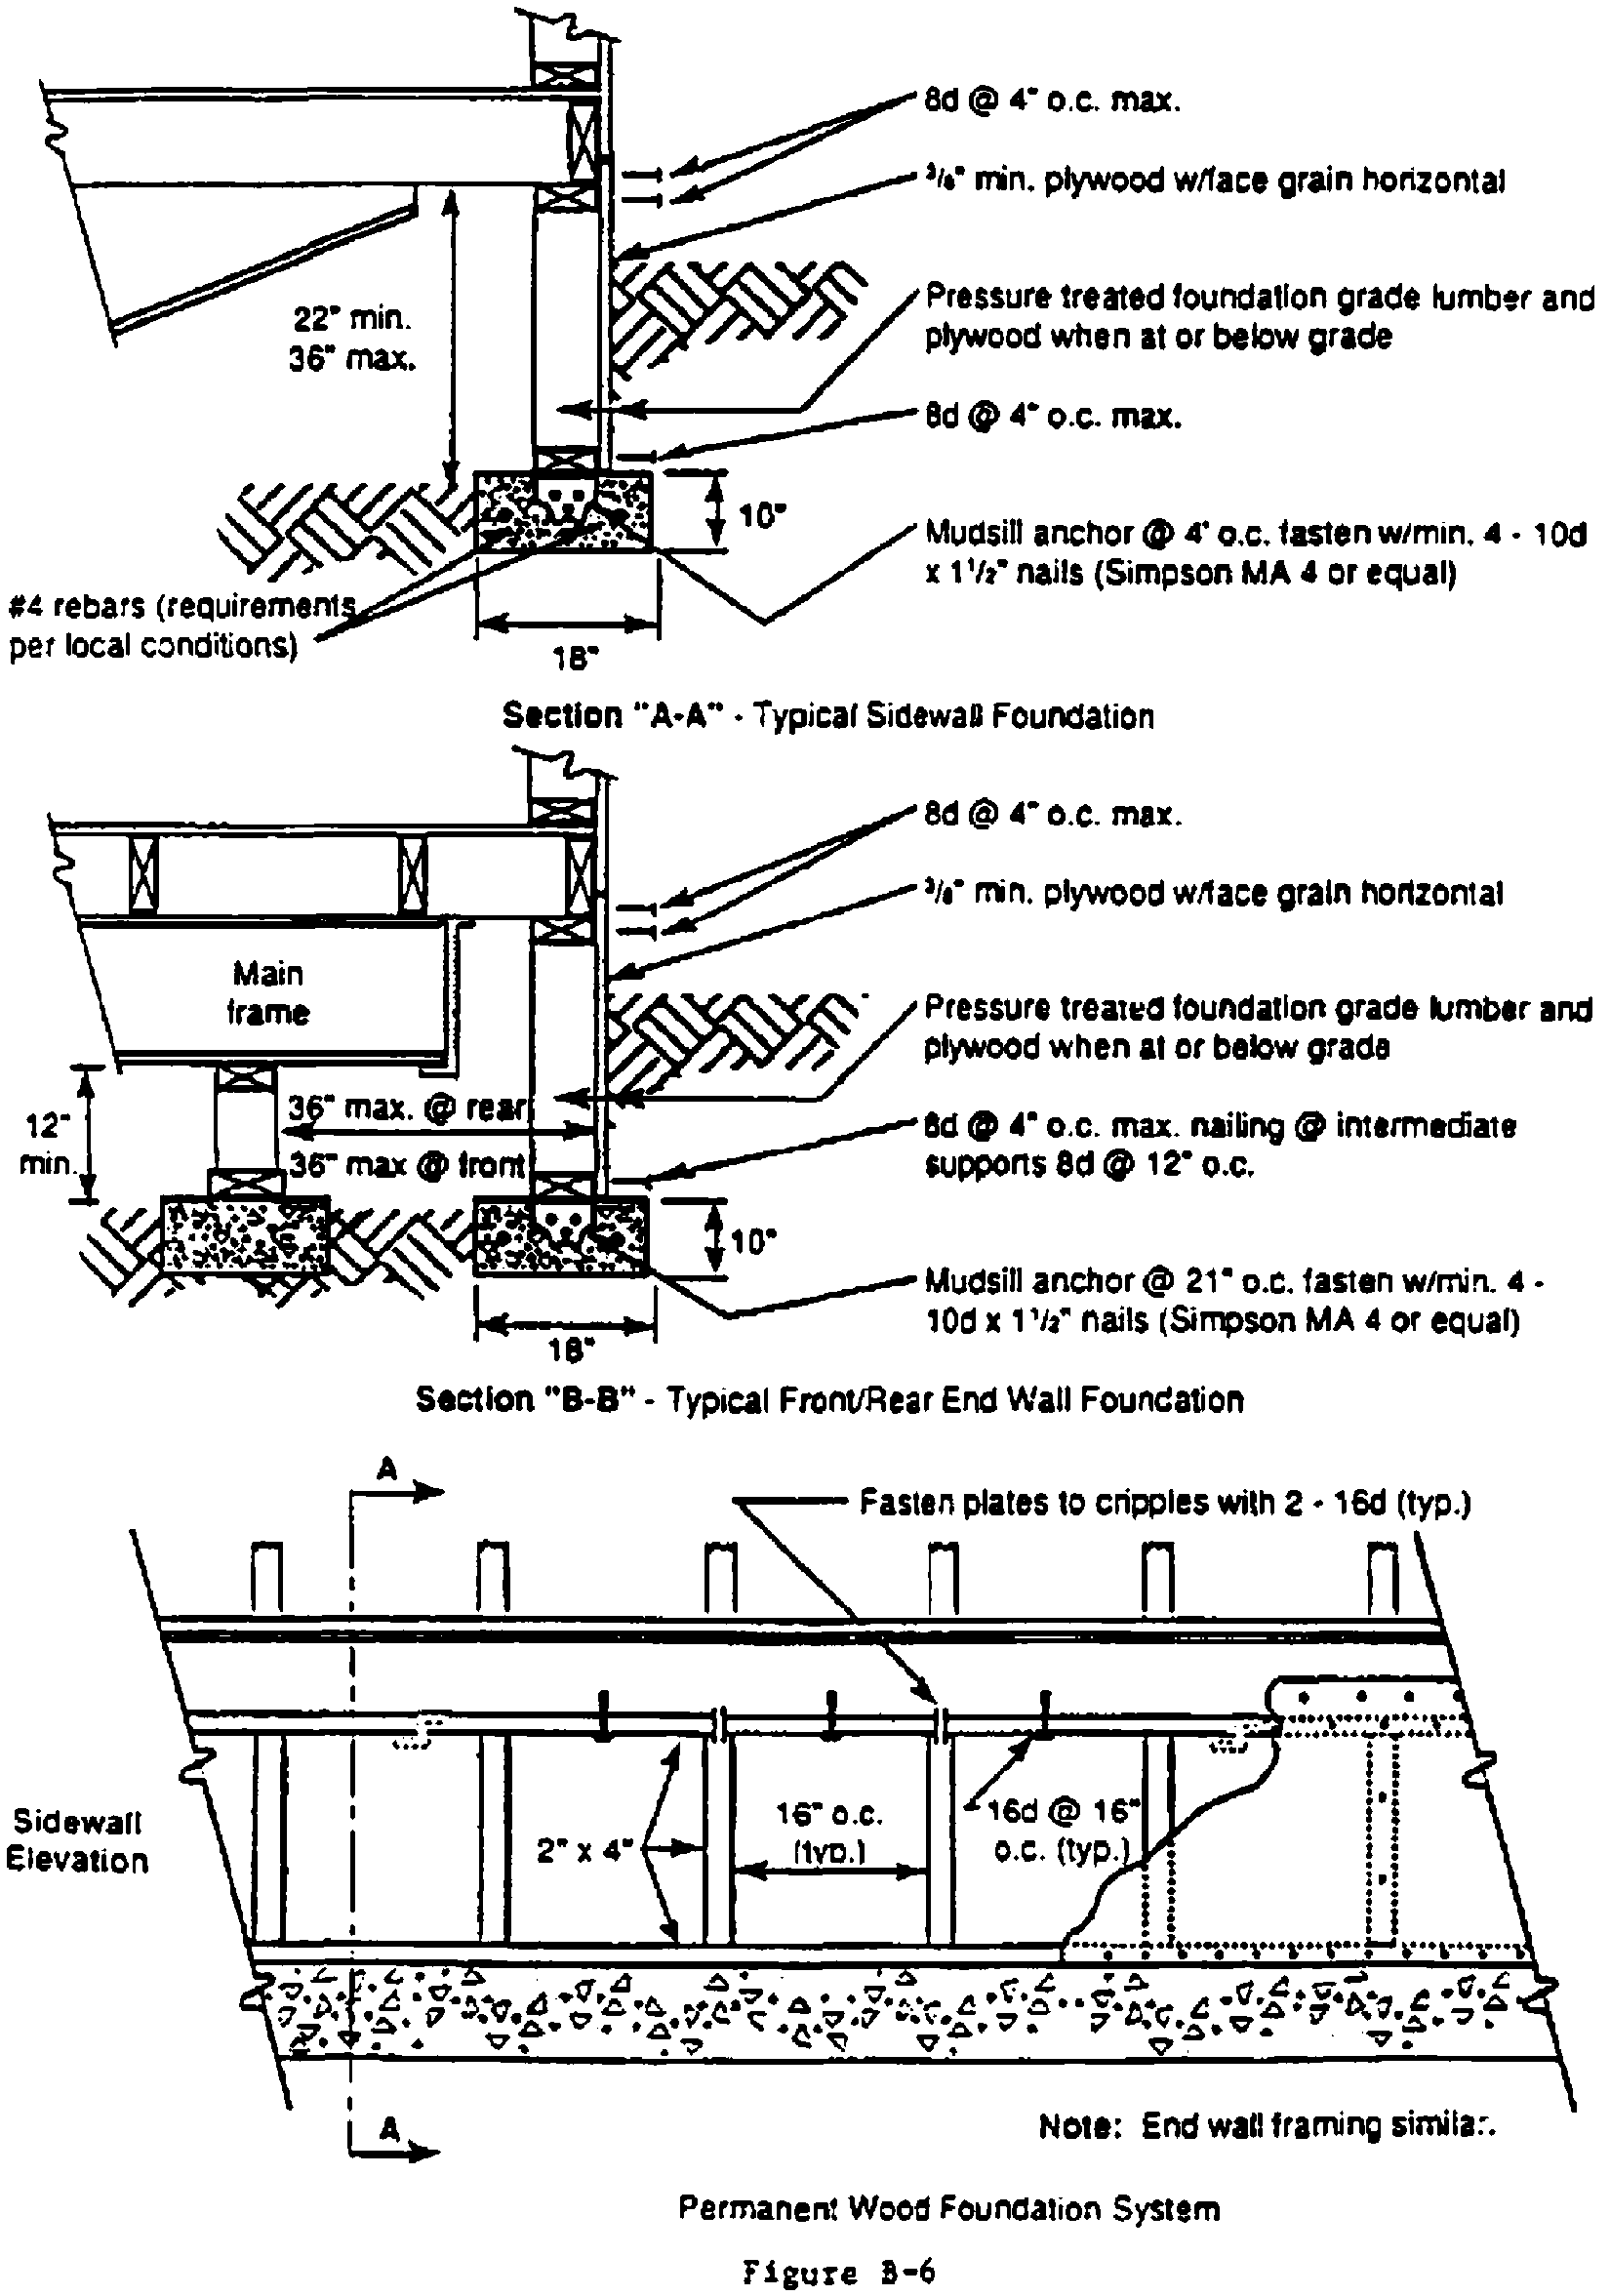 TYPICAL DESIGNS FOR LOAD-BEARING SUPPORTS FOR MANUFACTURED HOMES - Figure 4